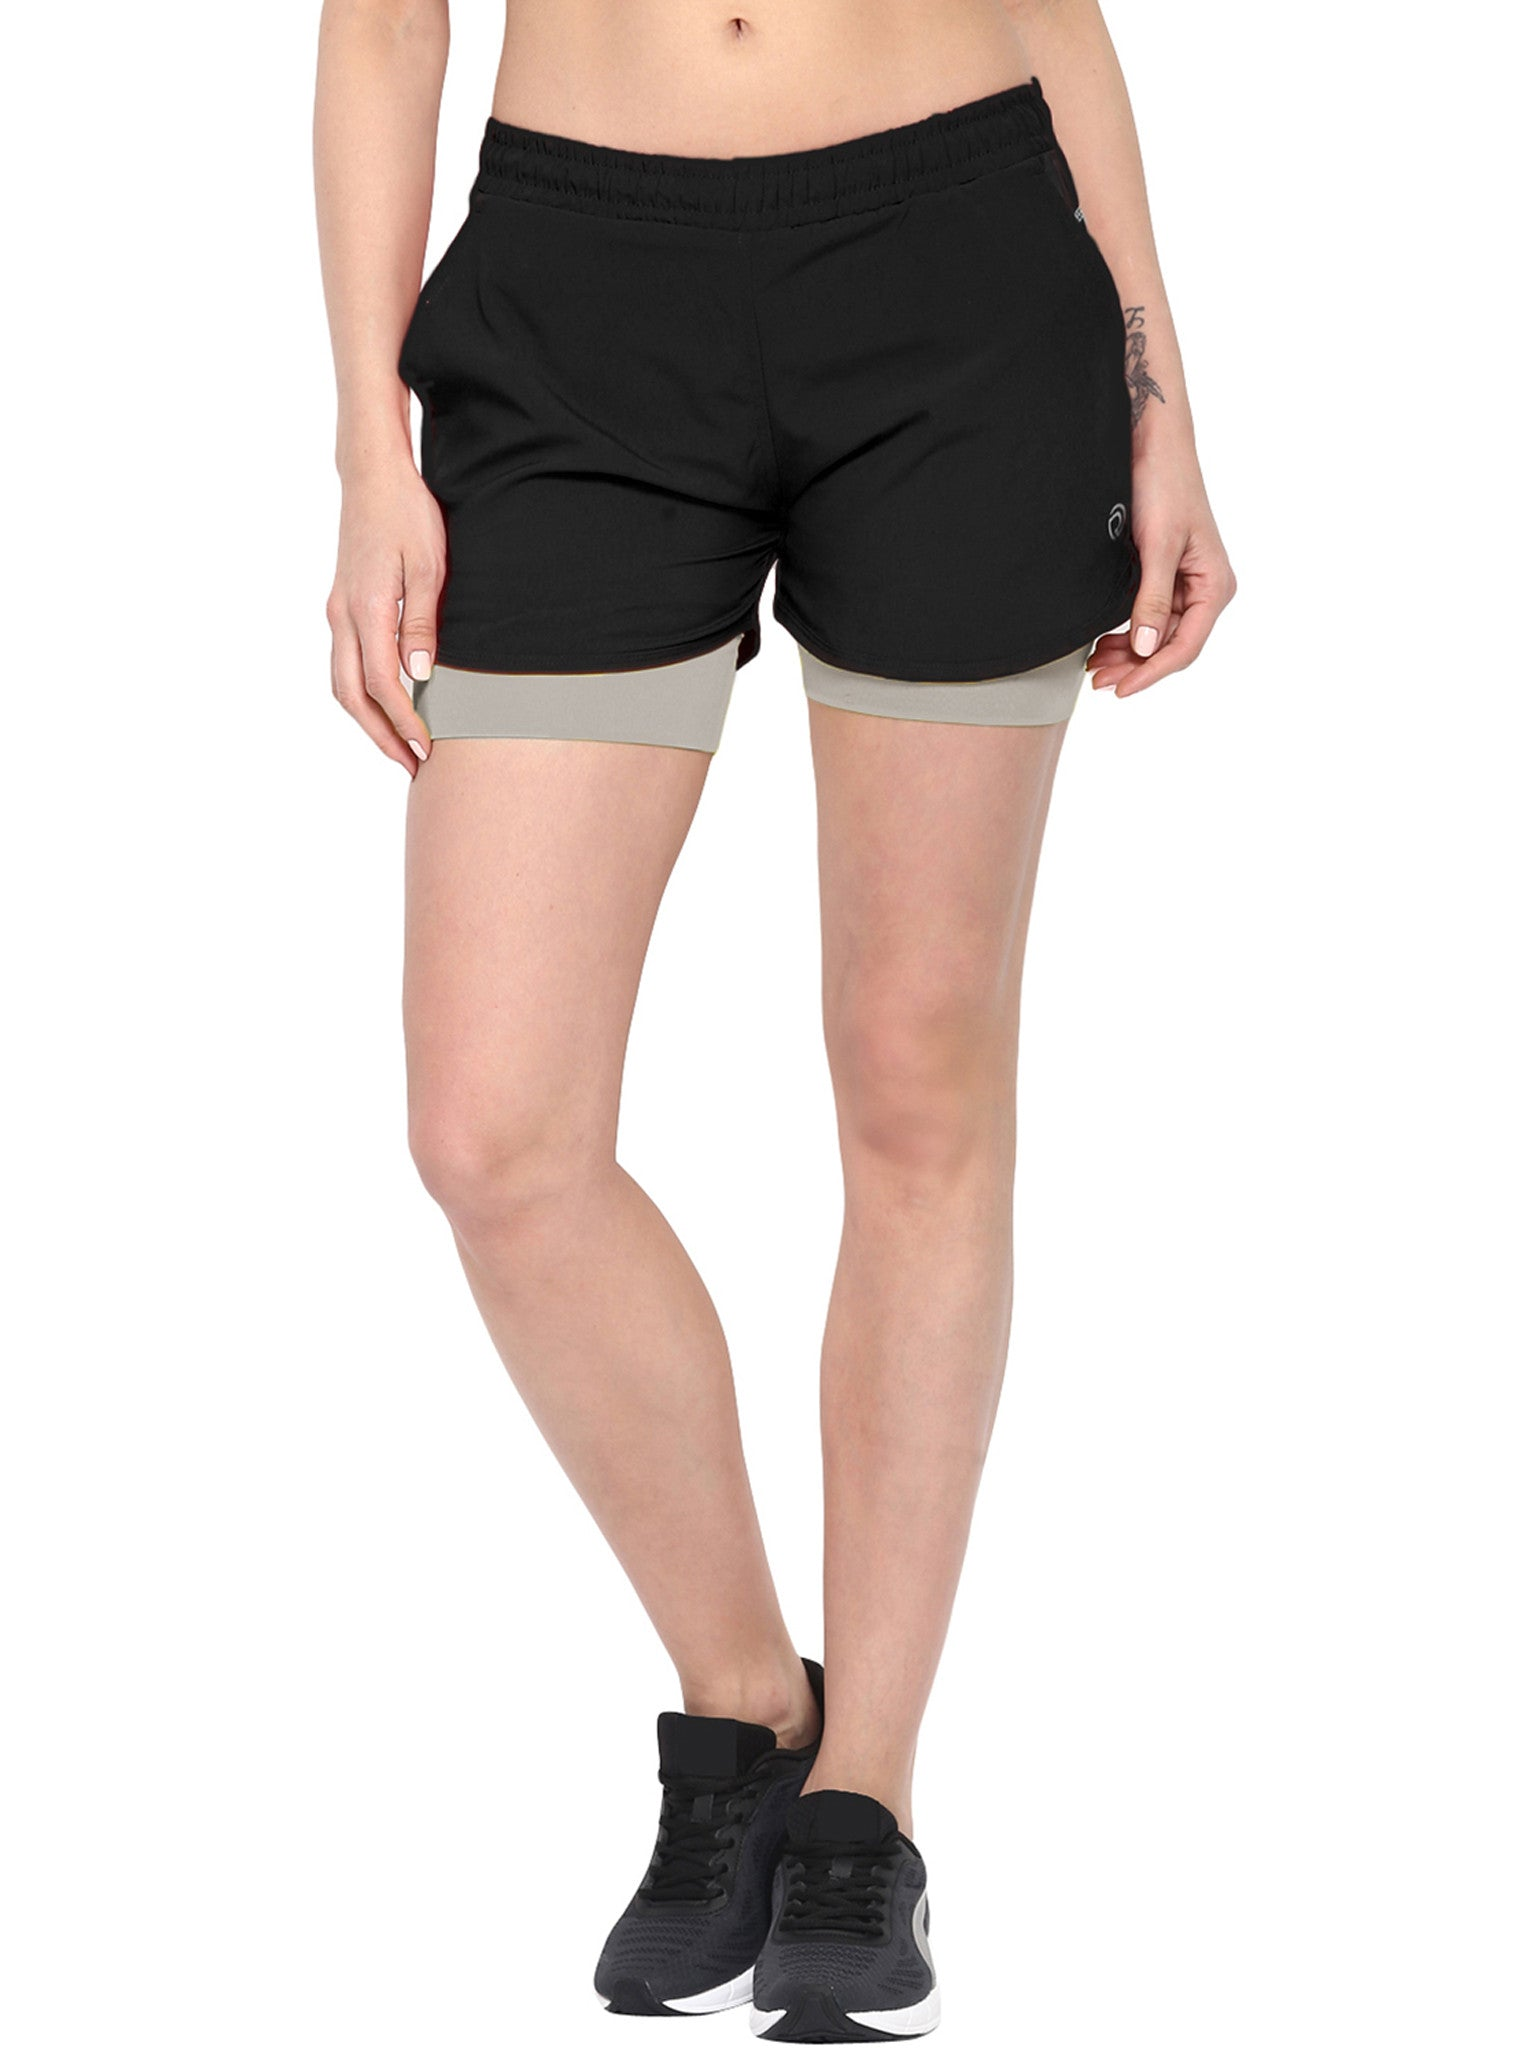 Shorts With Phone Pocket - The SPS Grey Black